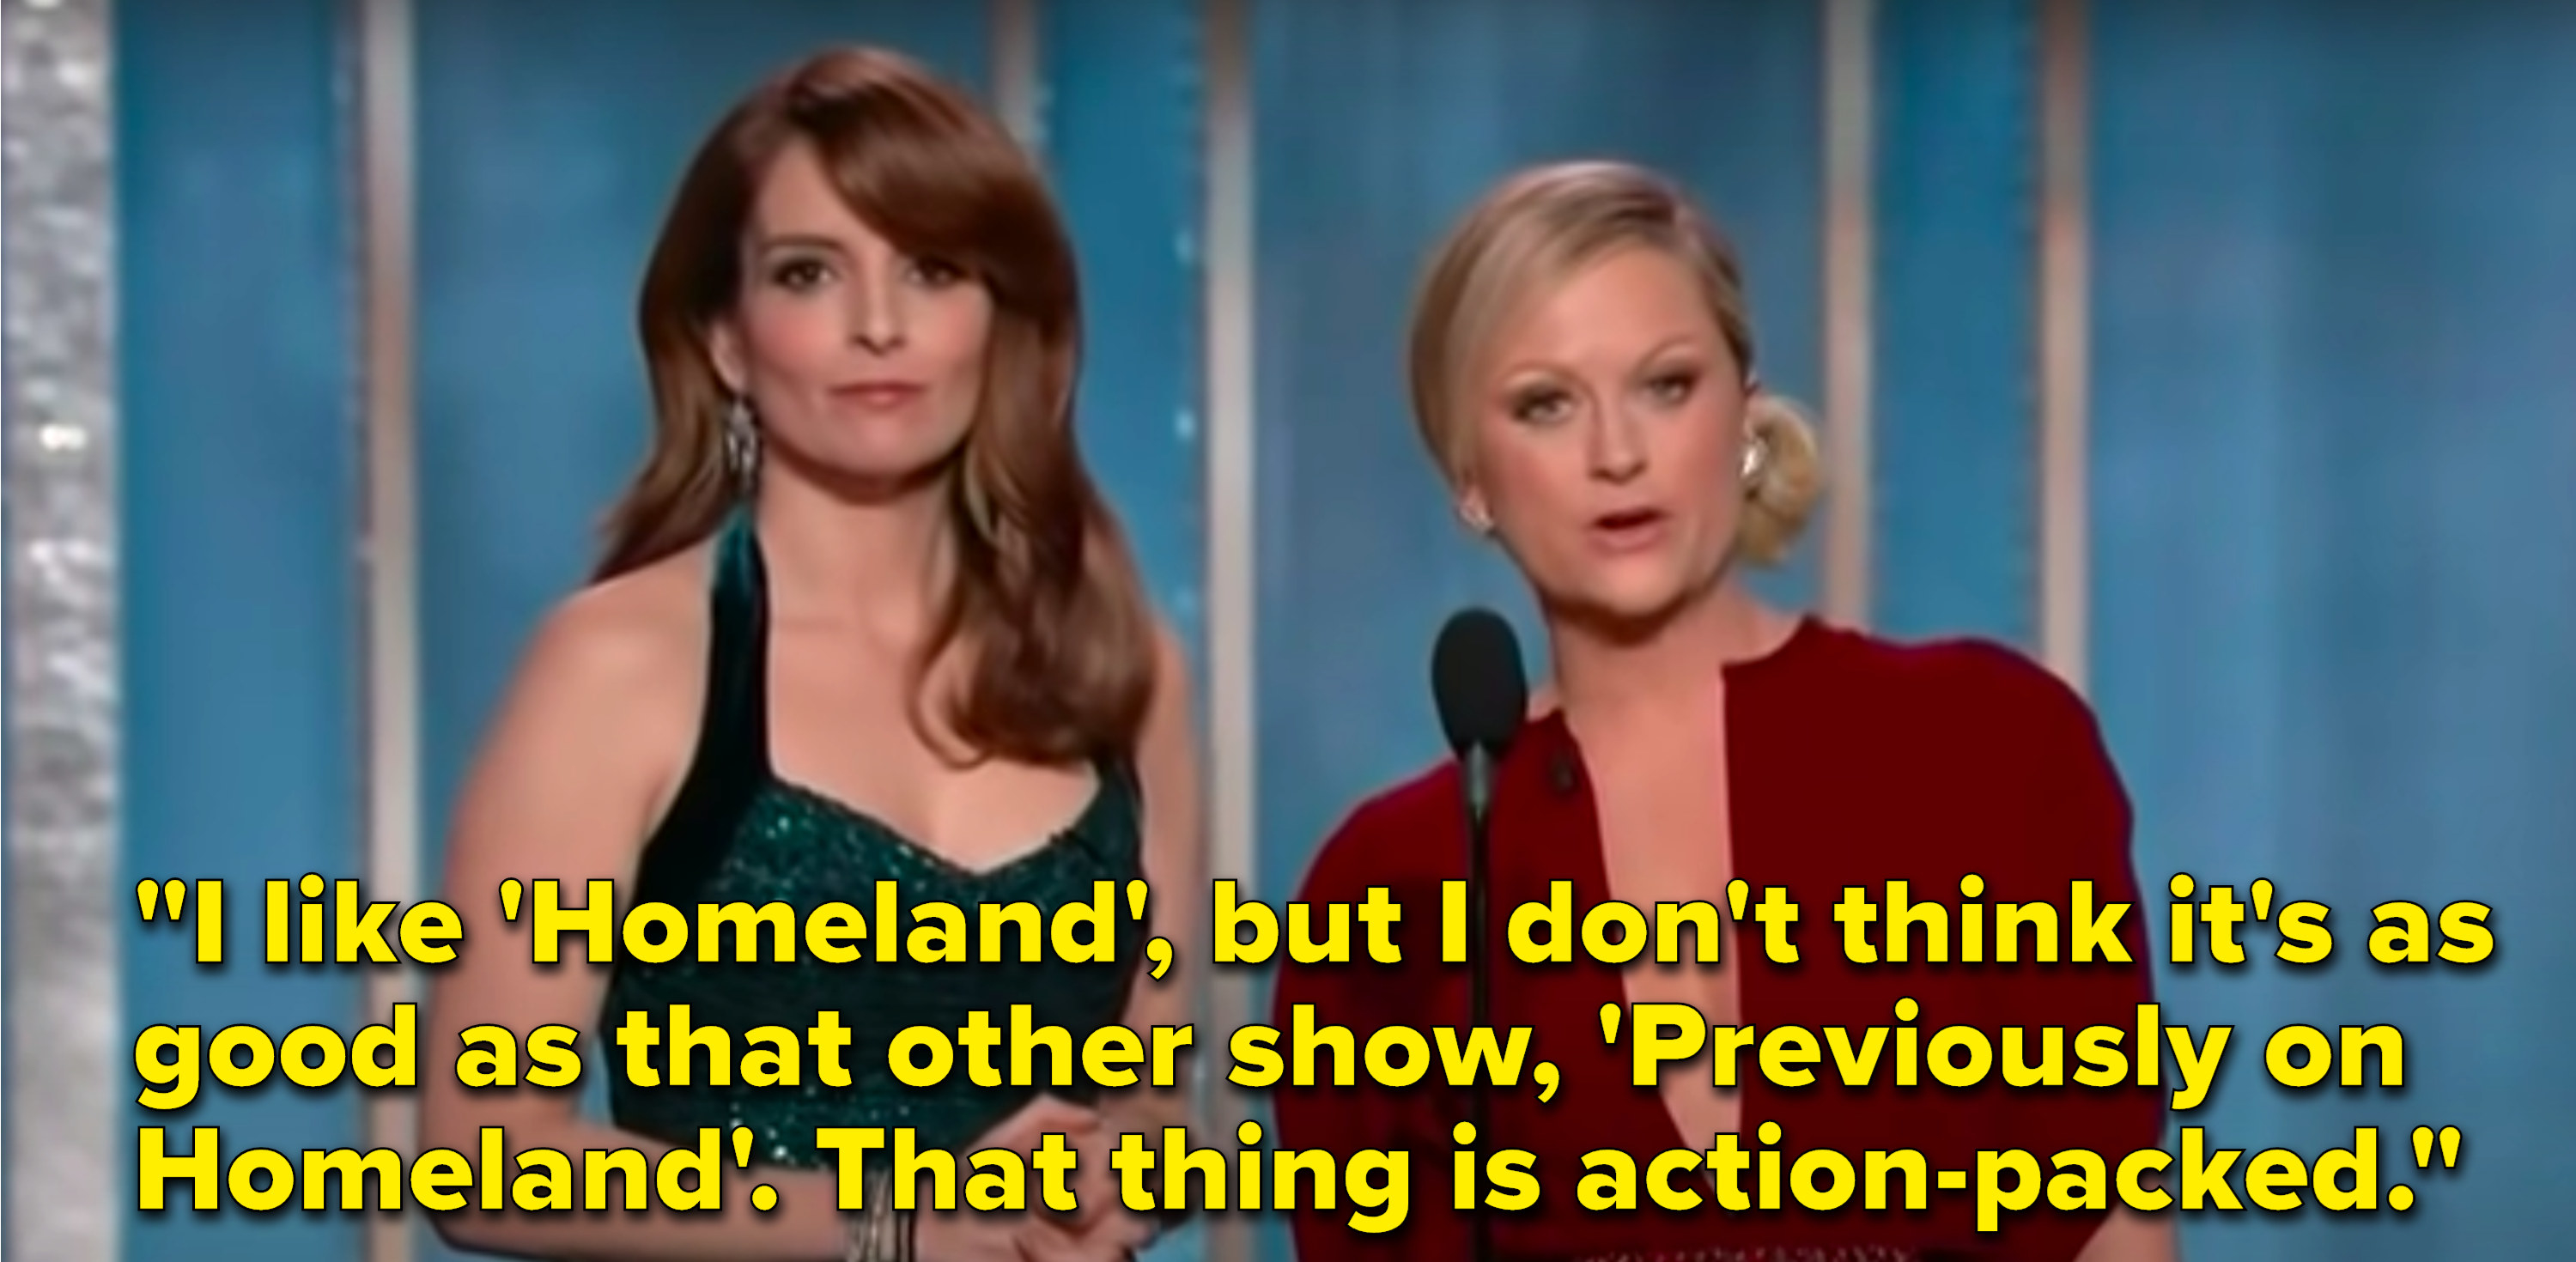 """Poehler says, """"I like 'Homeland', but I don't think it's as good as that other show, 'Previously on Homeland', that thing is action-packed"""""""